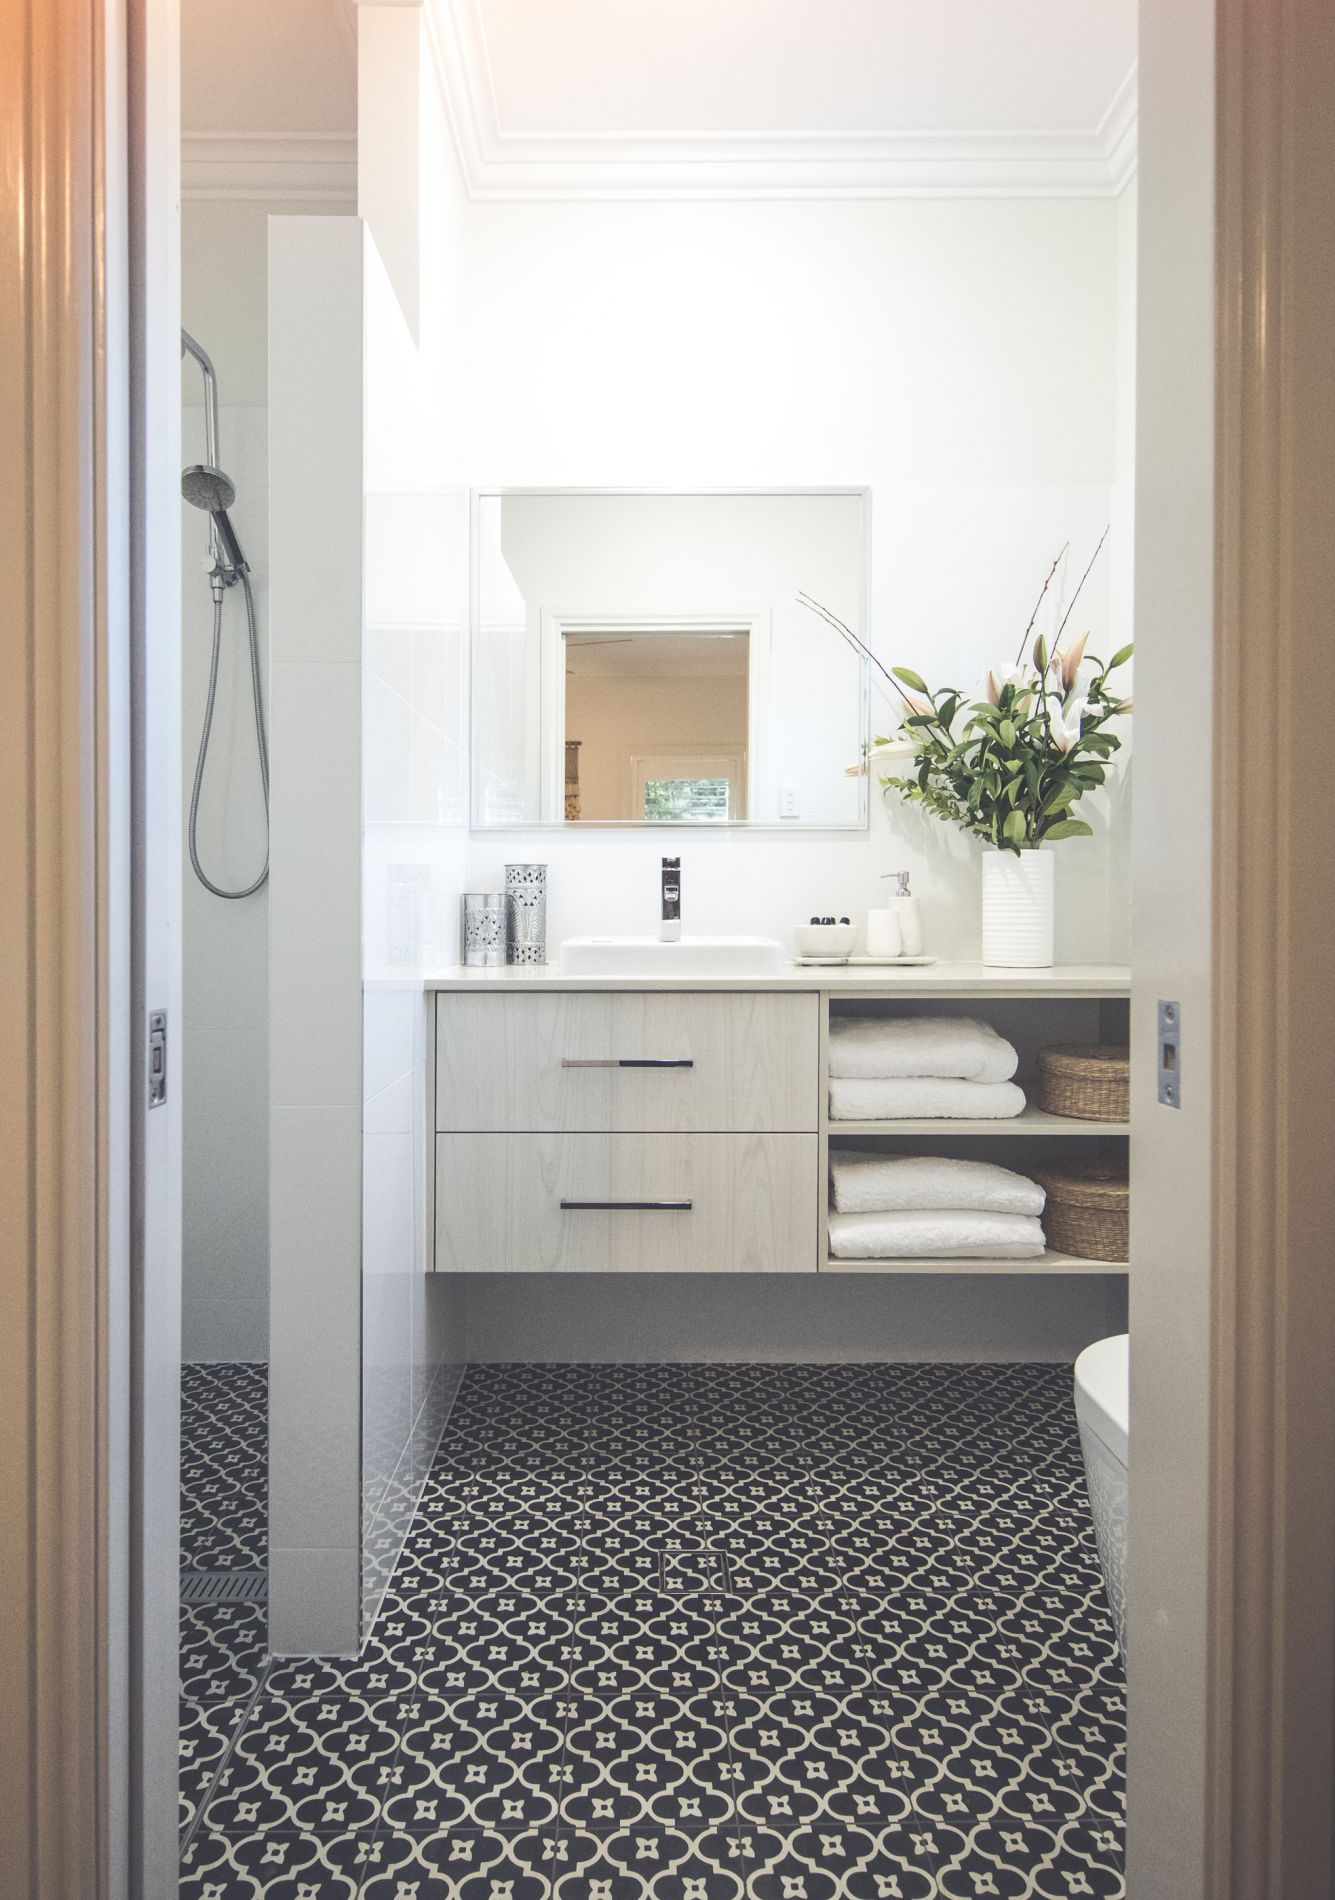 Main bedroom ensuite with patterned tile floor